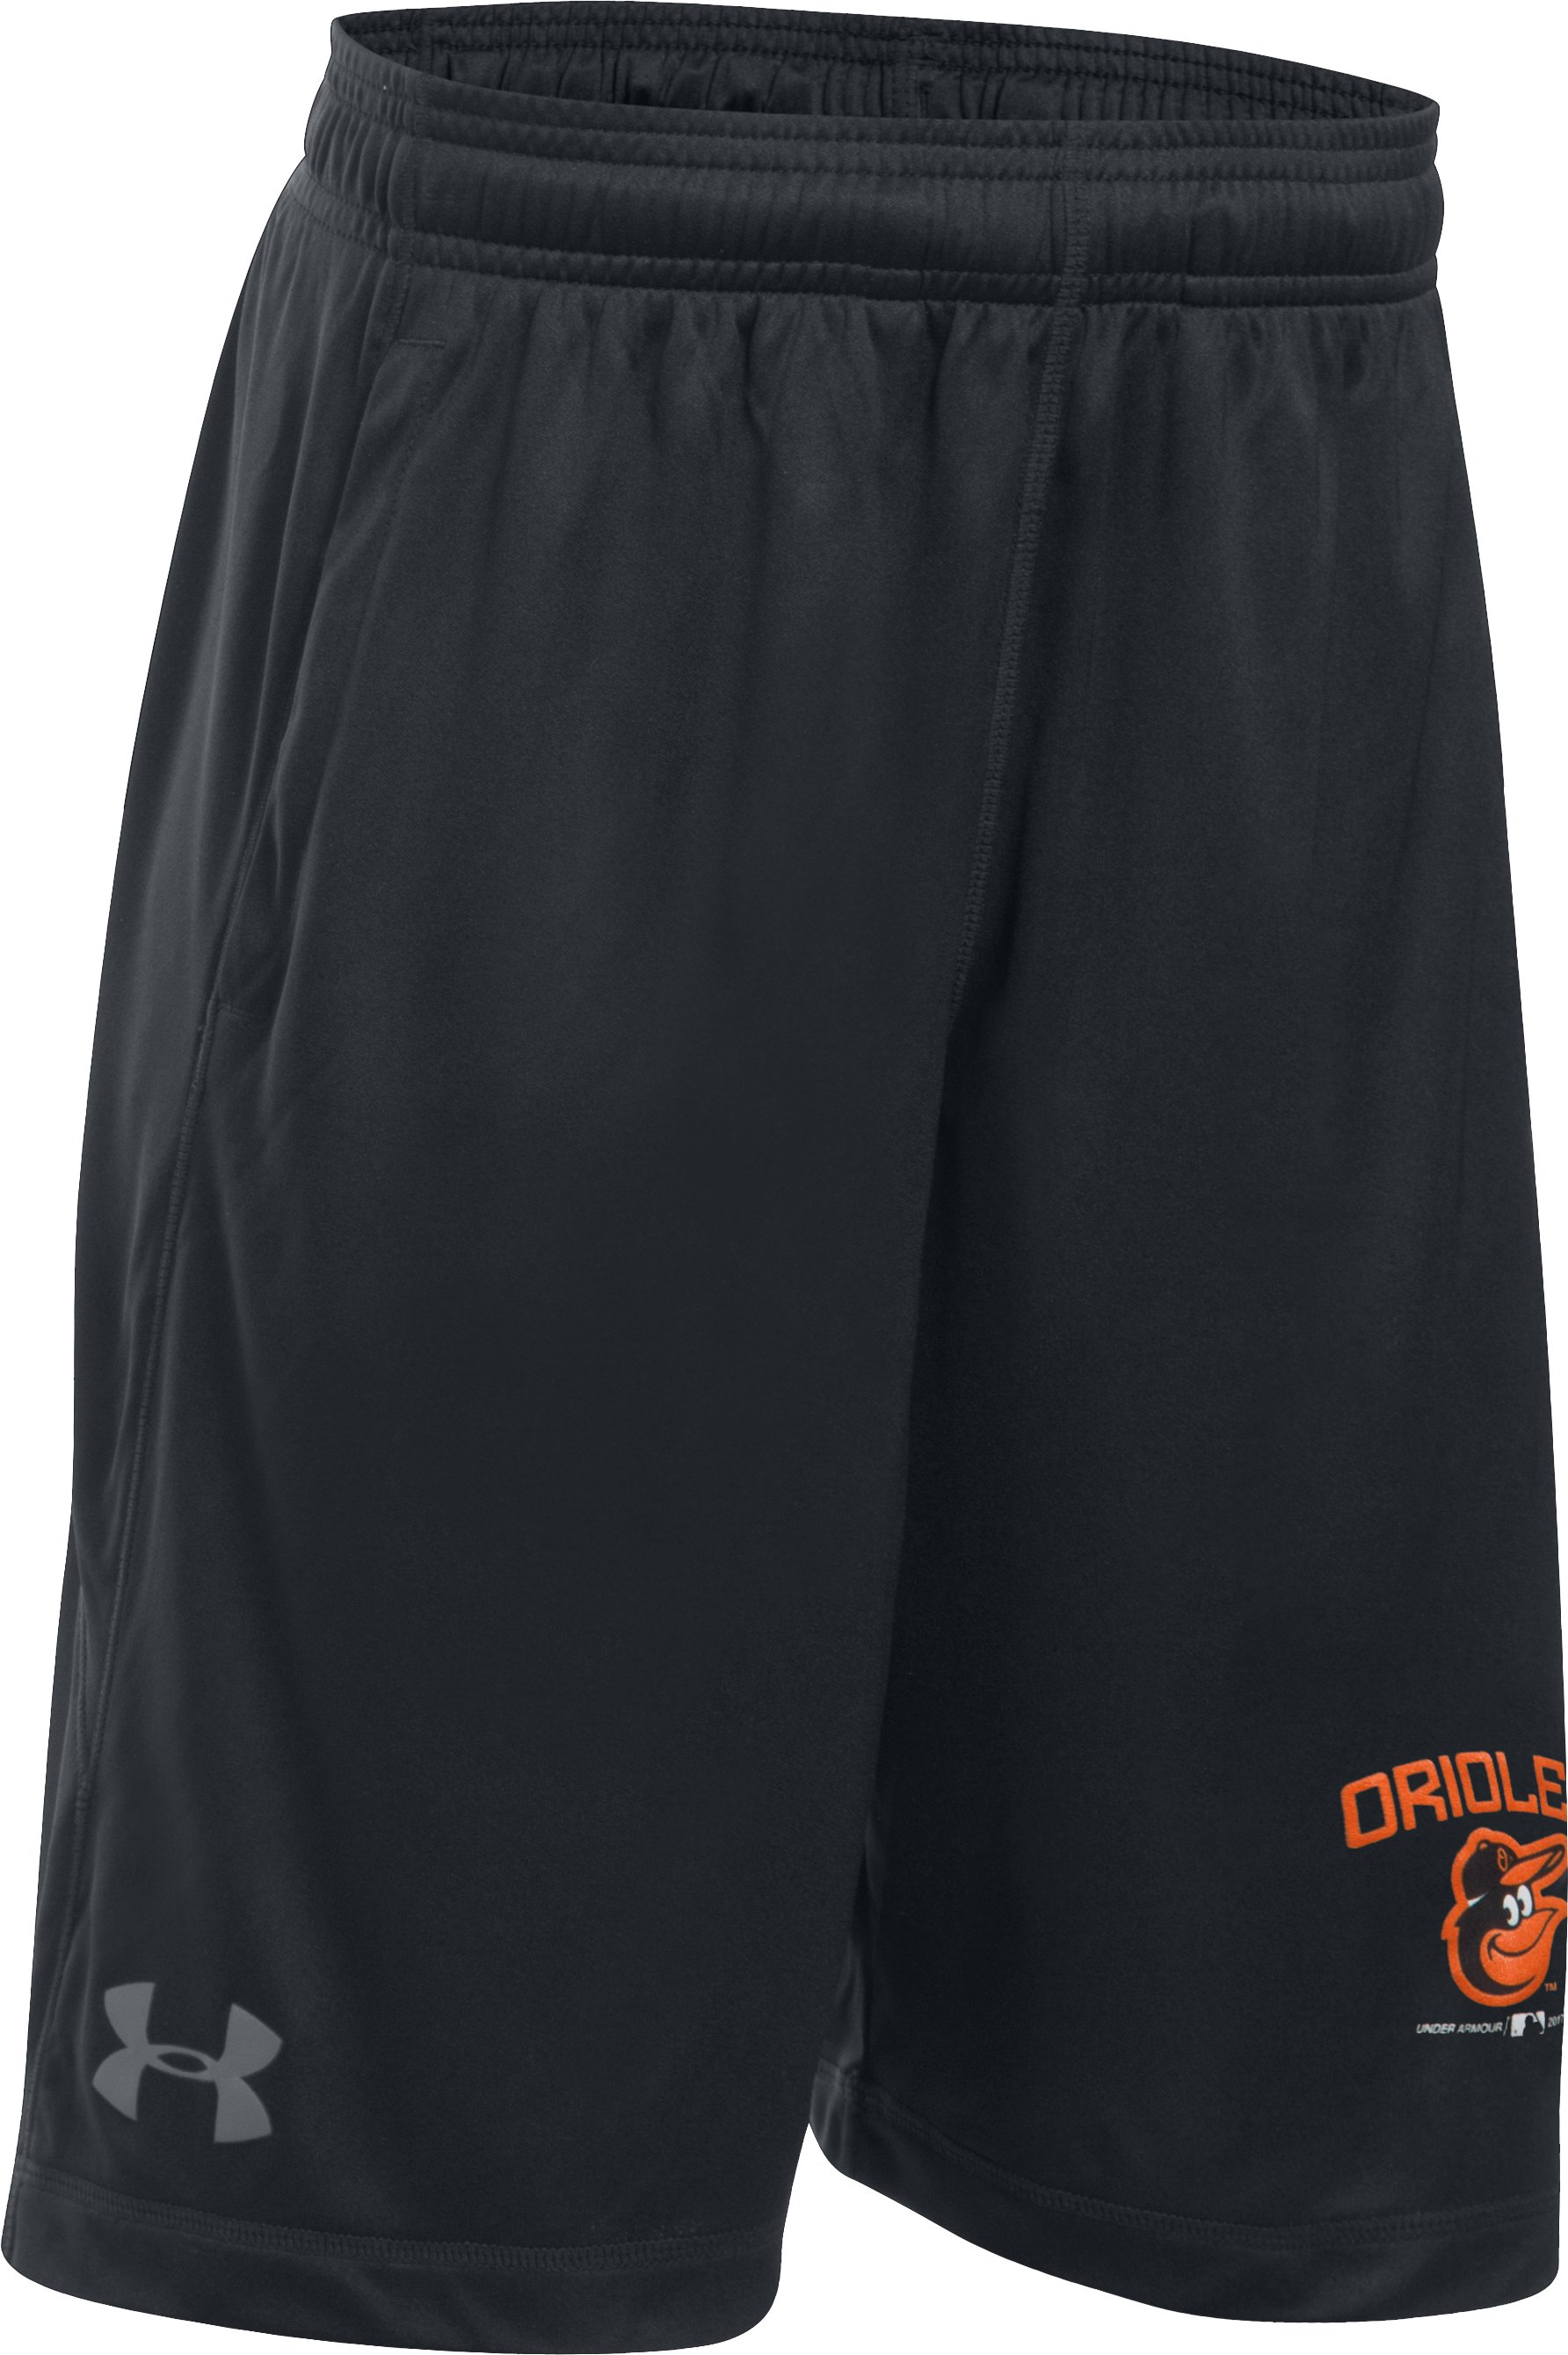 Boys' Orioles Training Shorts, Black